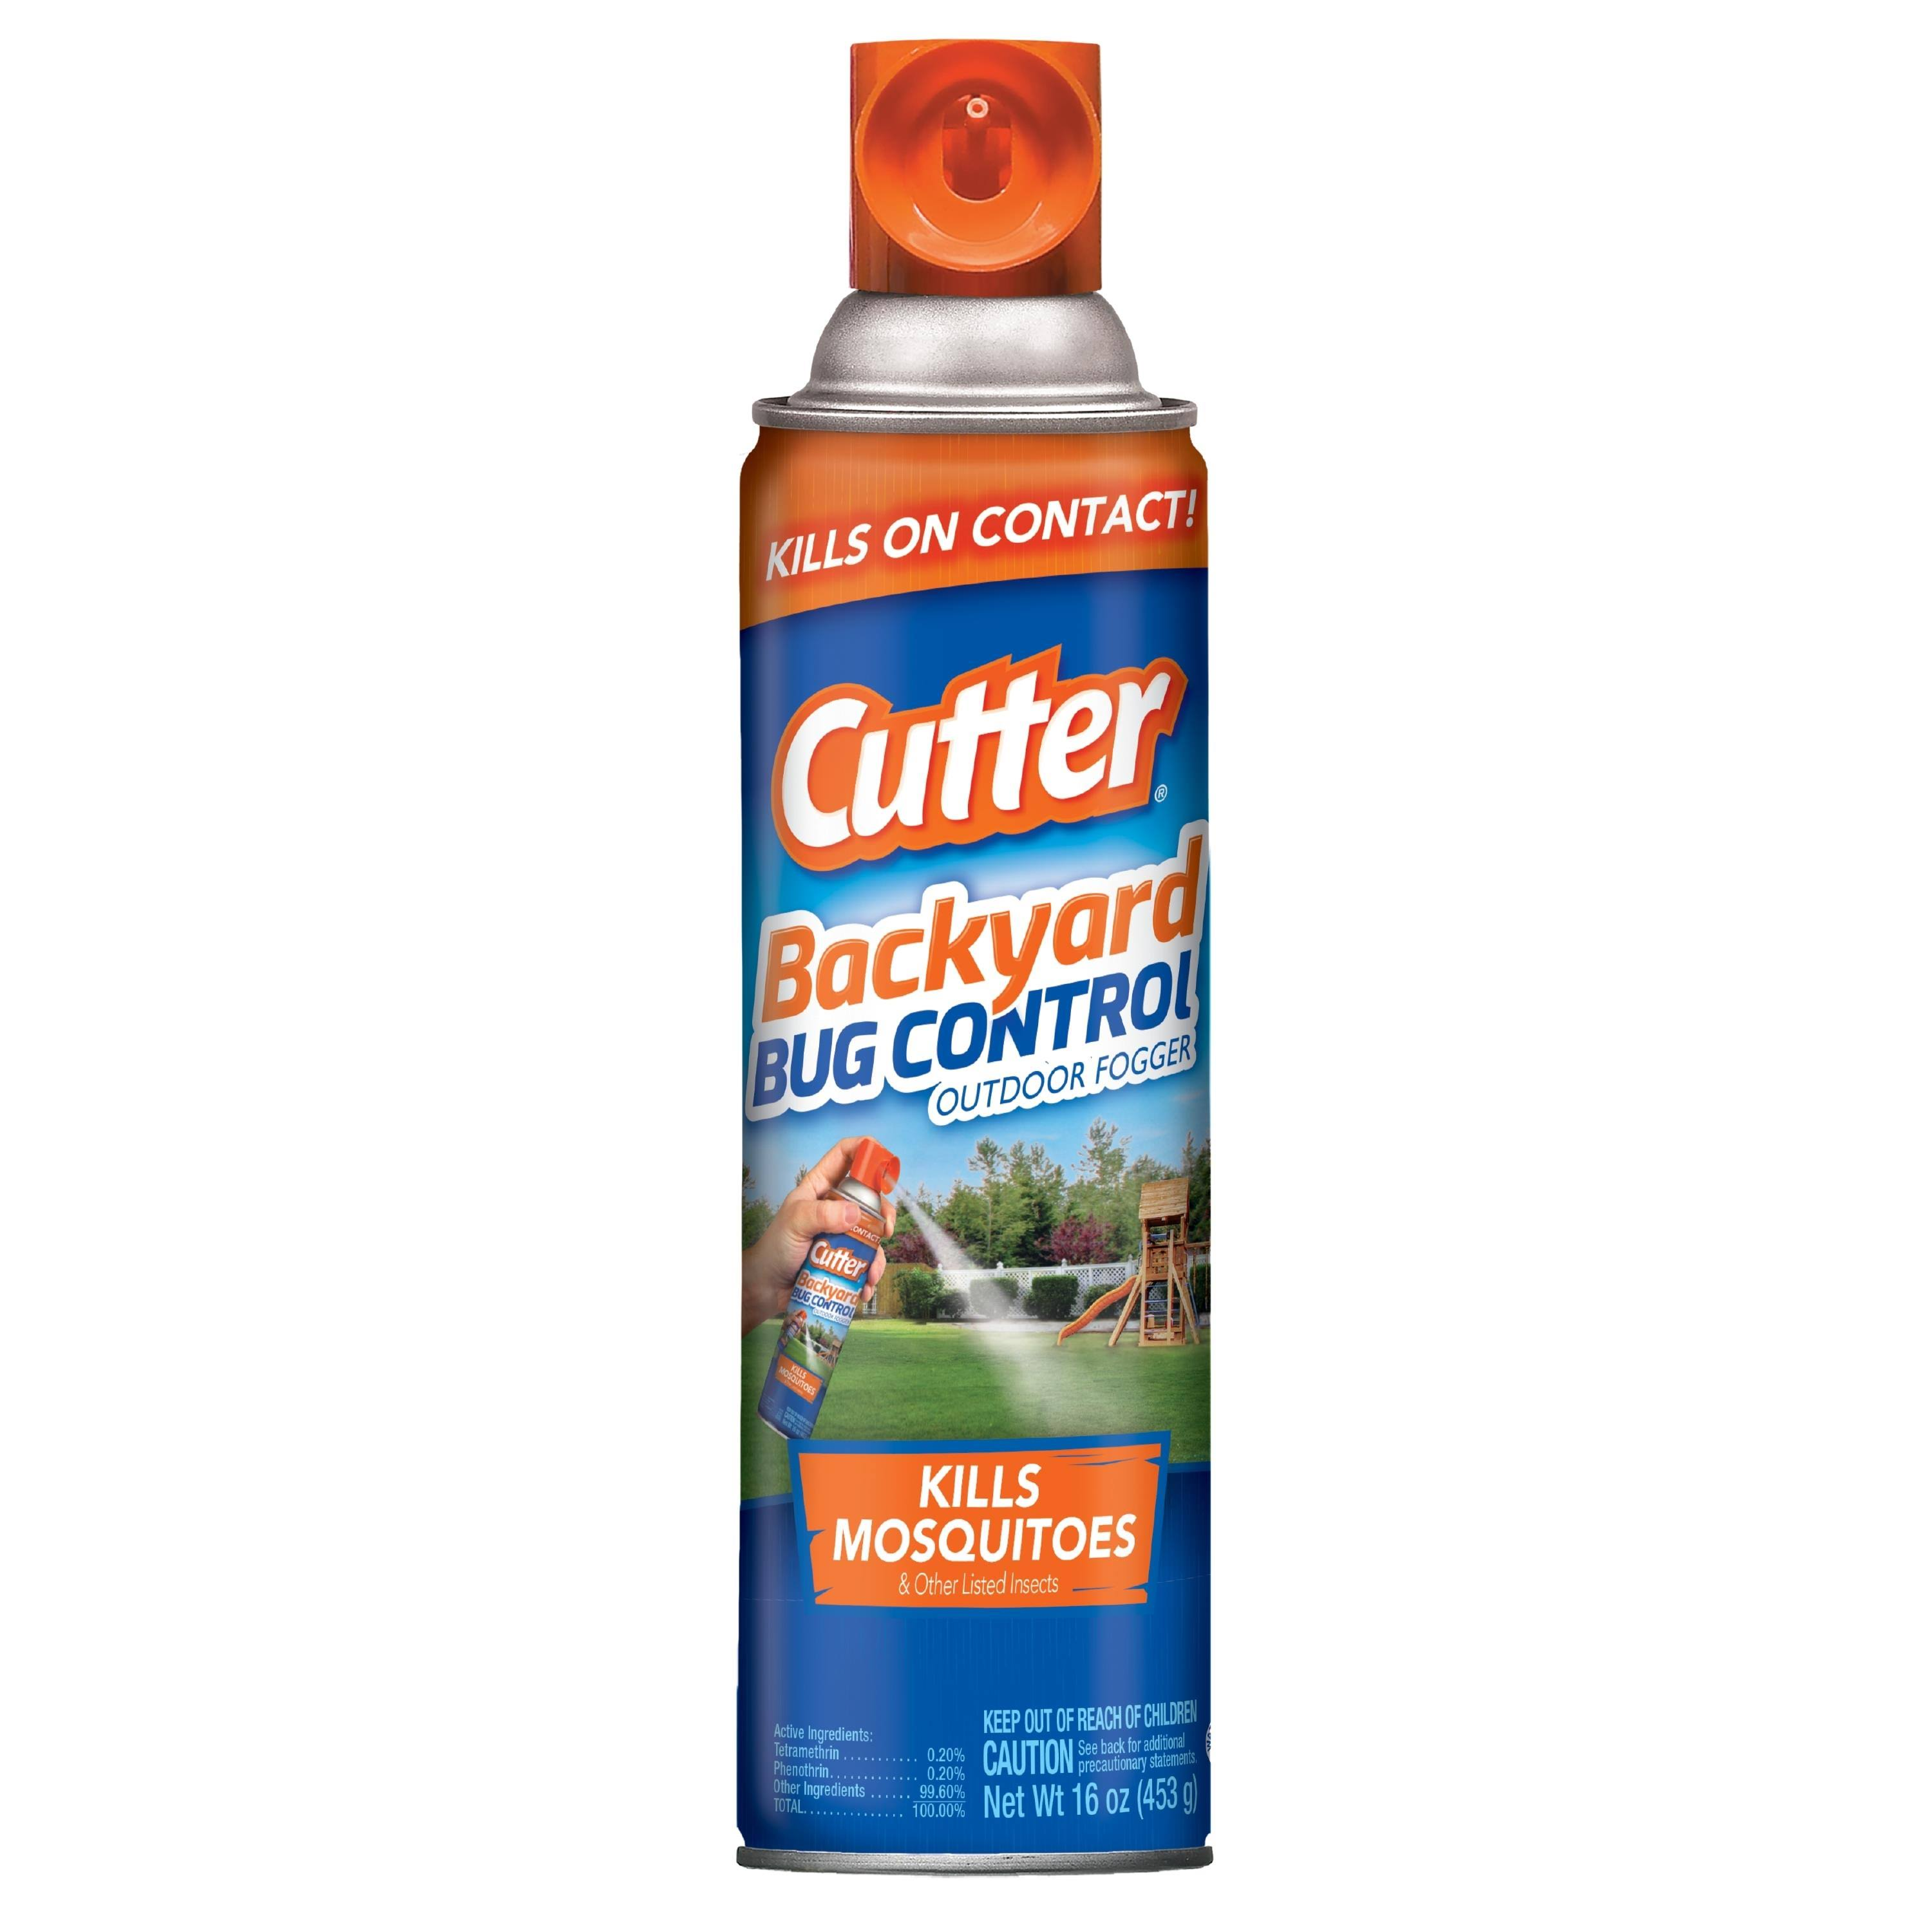 Cutter Backyard Bug Control Outdoor Fogger - 16oz